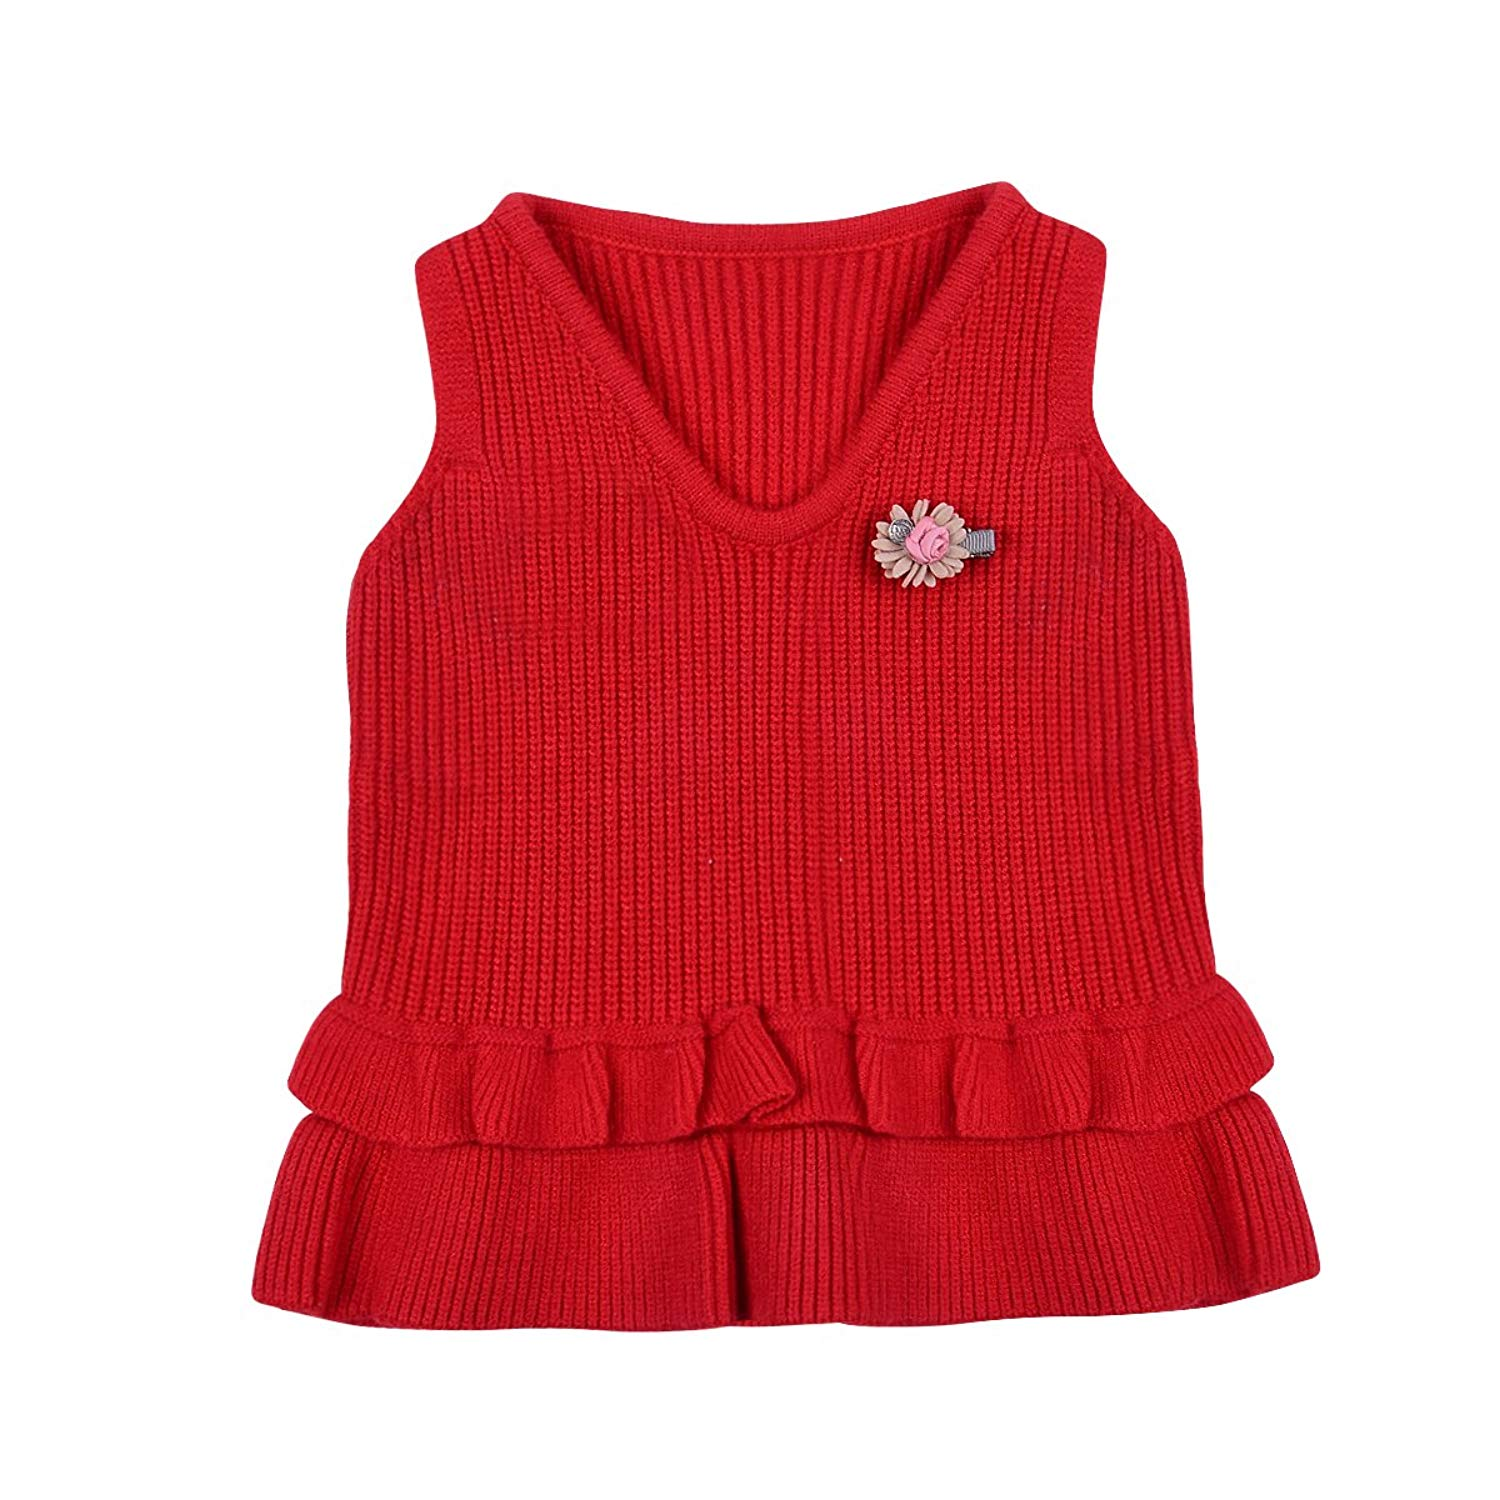 d0735e16a Get Quotations · little dragon pig Toddler Baby Girl Sweater Vest  Sleeveless V-Neck Ruffle Cardigan Fall Clothes